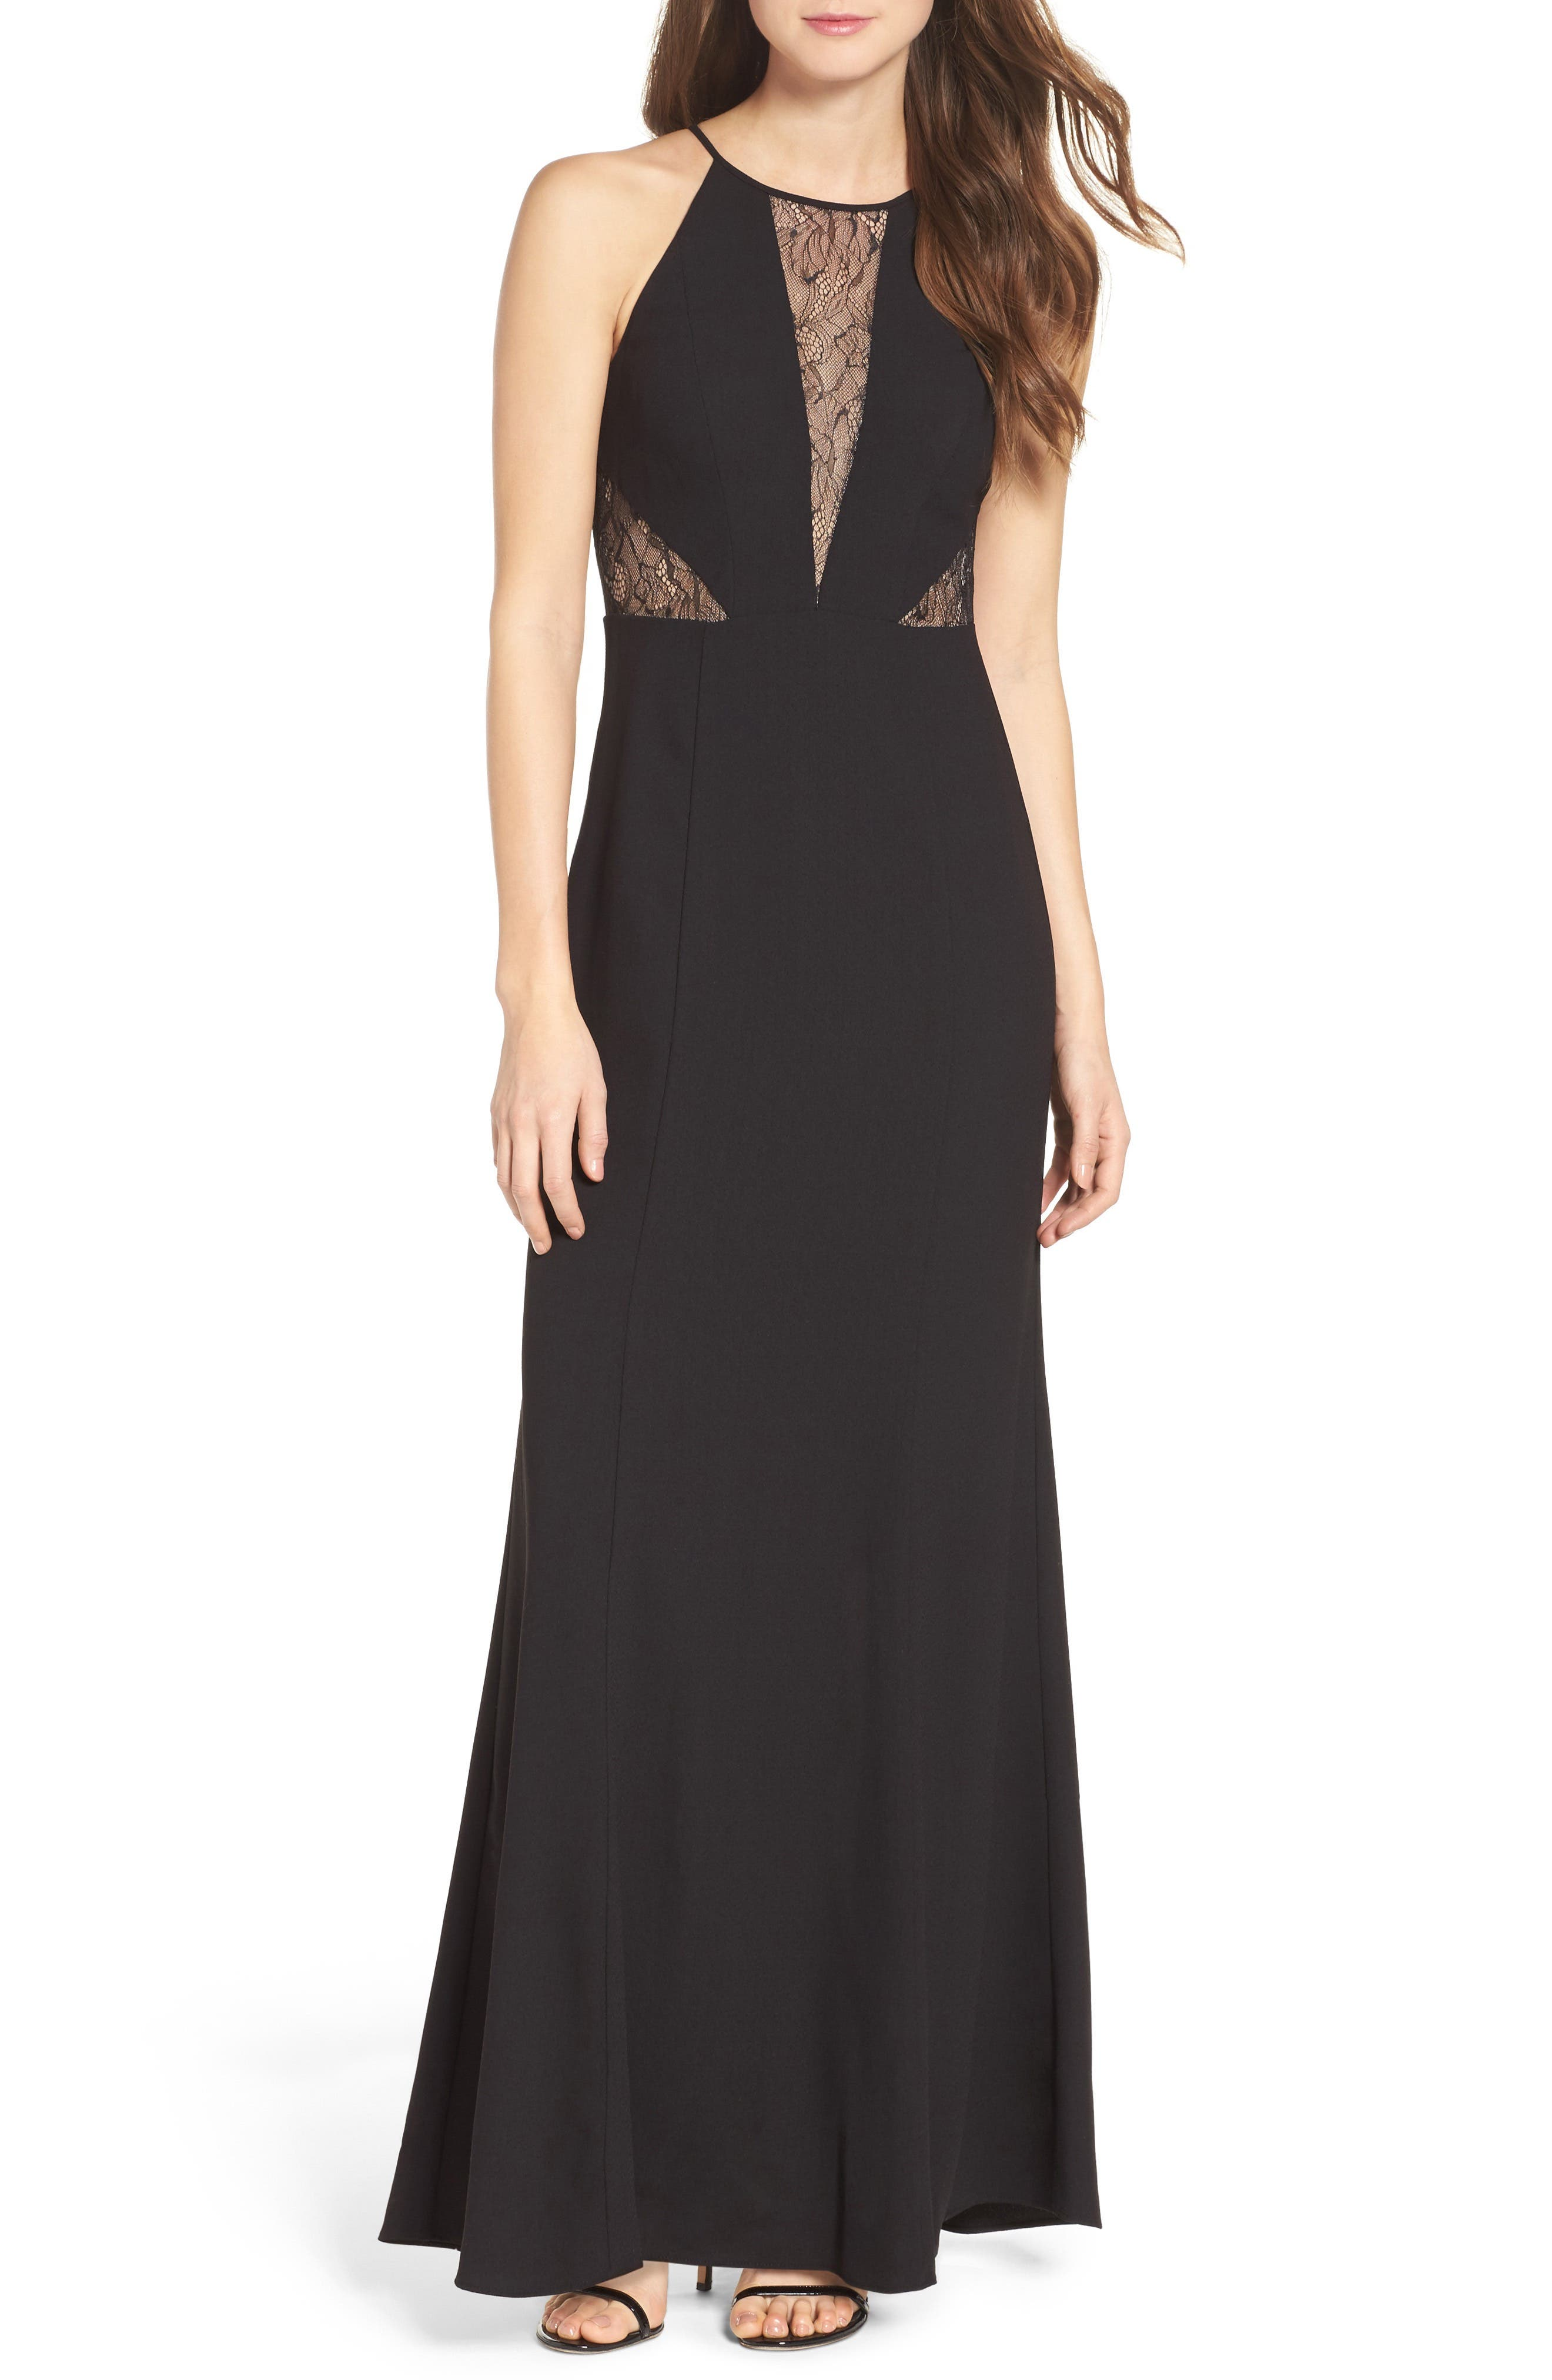 Alternate Image 1 Selected - Aidan by Aidan Mattox Crepe & Lace Halter Style Gown